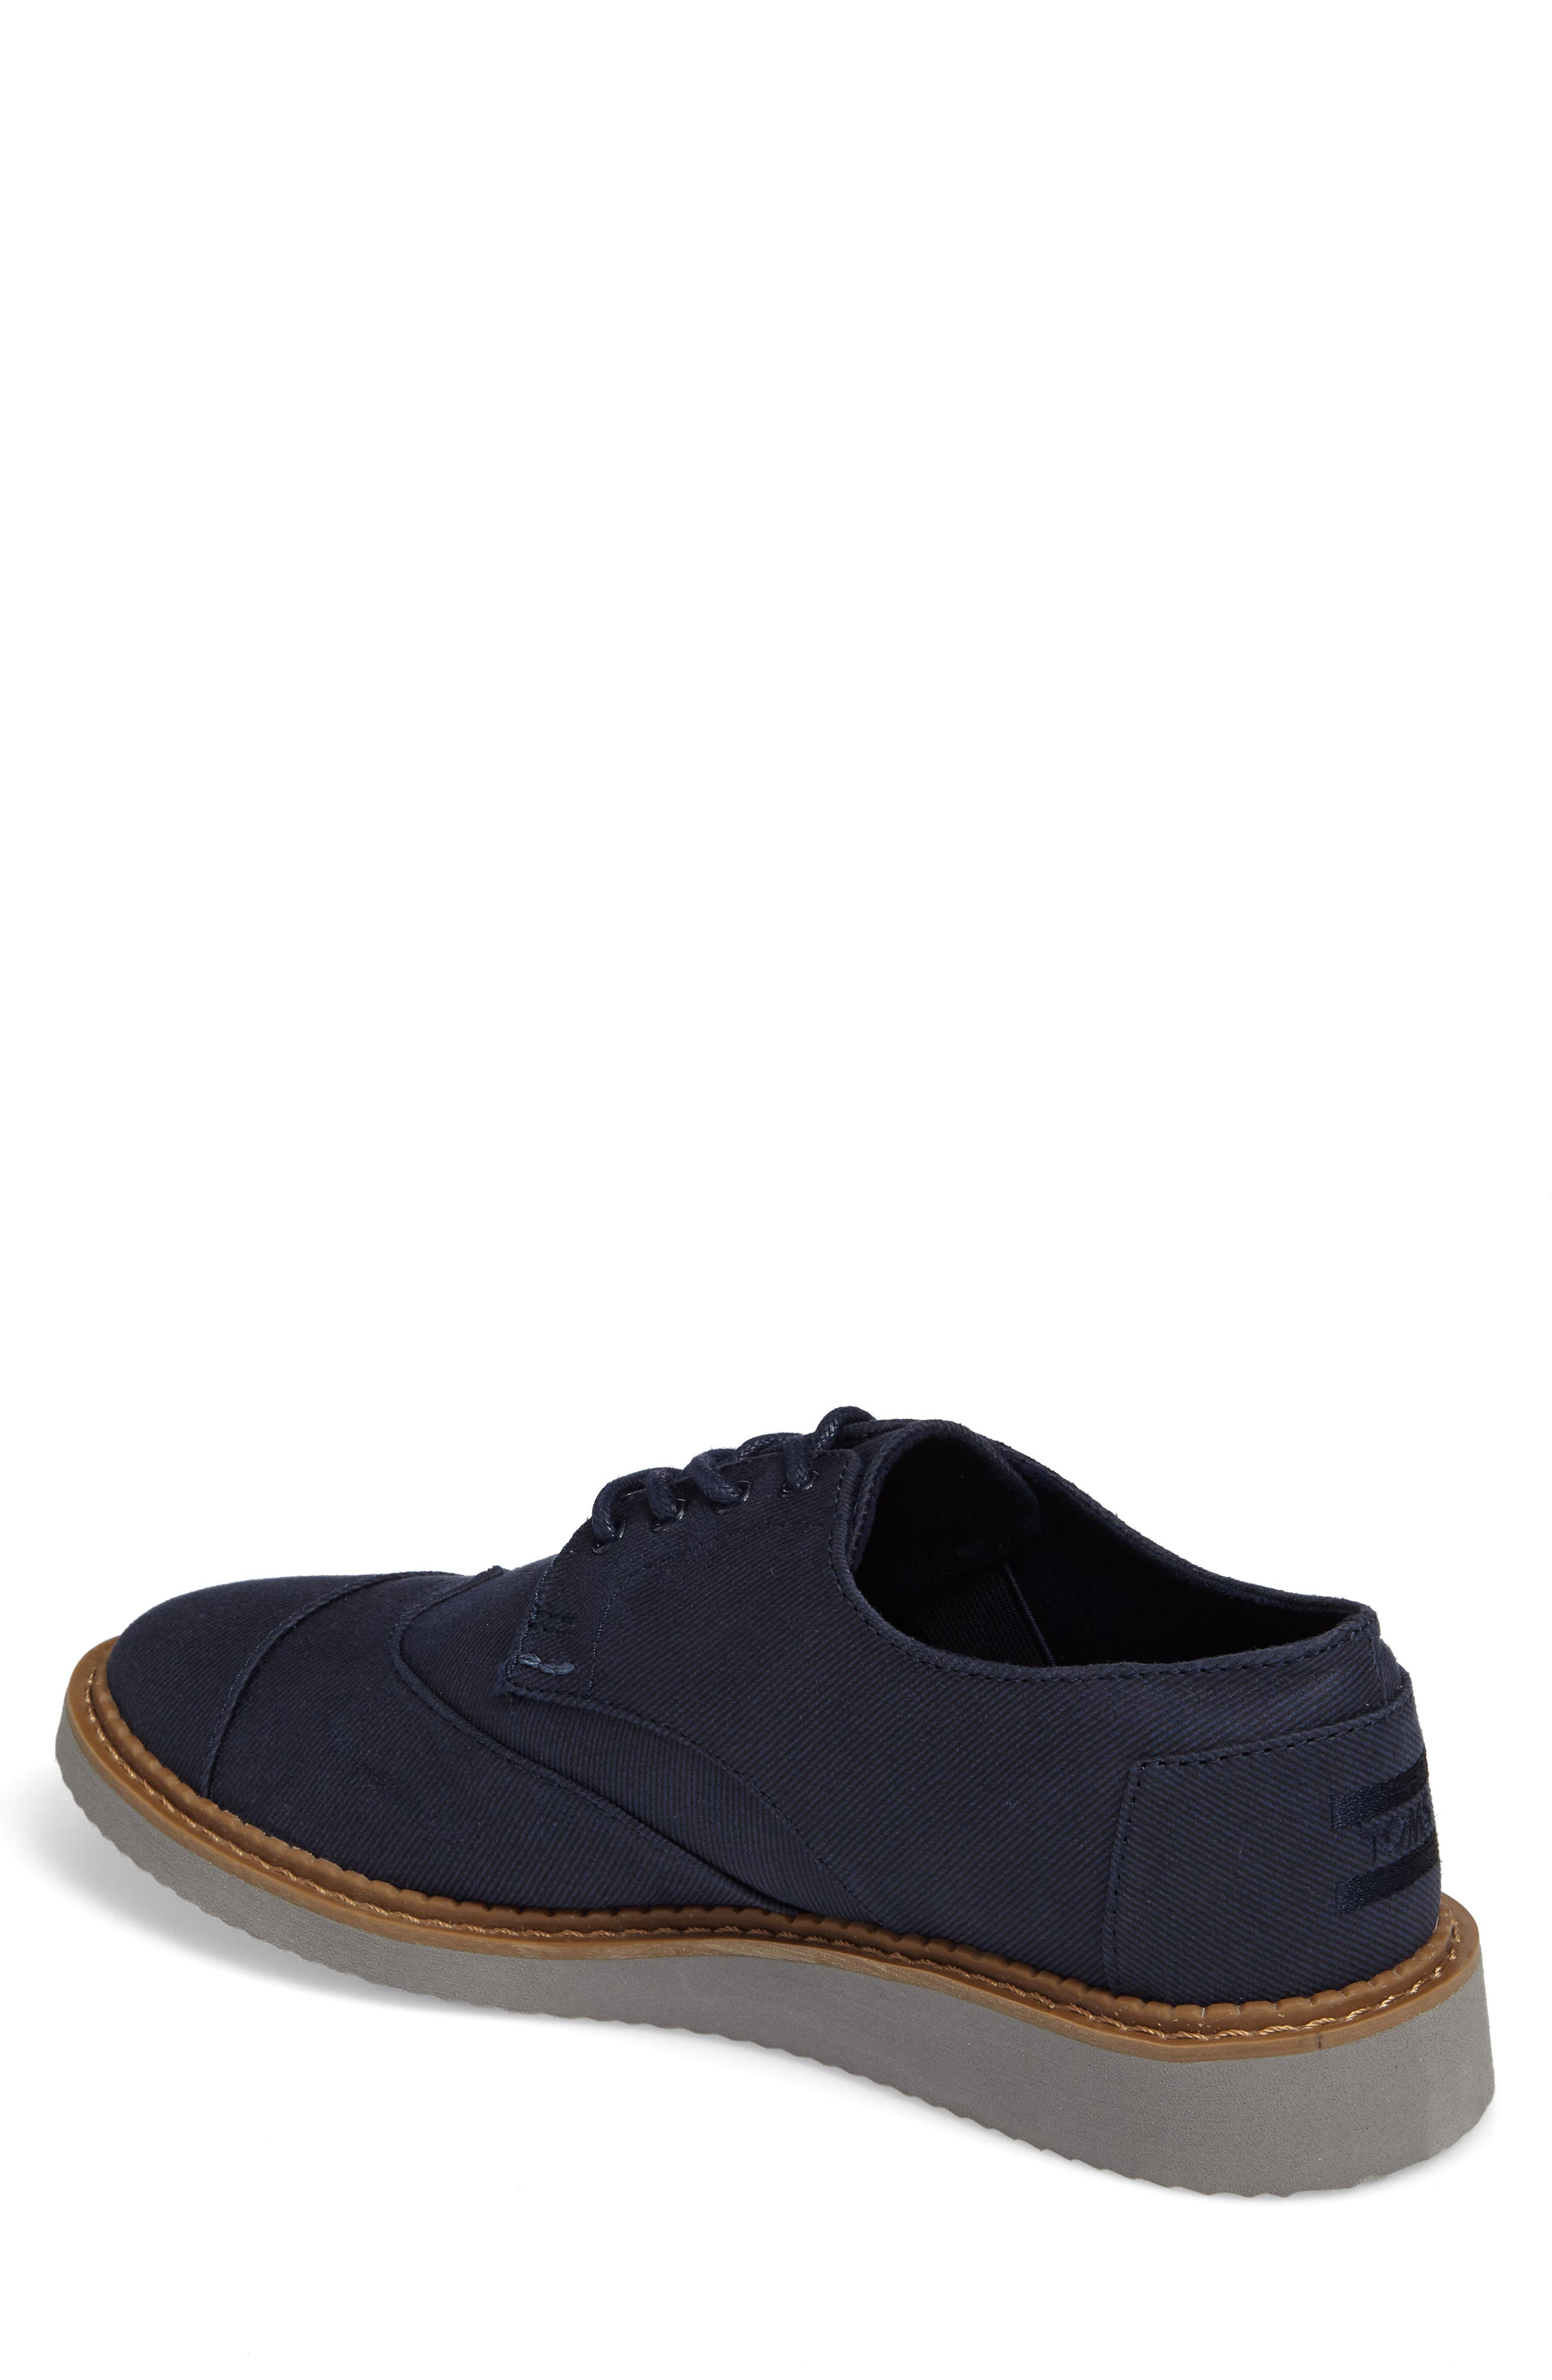 'Classic Brogue' Cotton Twill Derby,                             Alternate thumbnail 29, color,